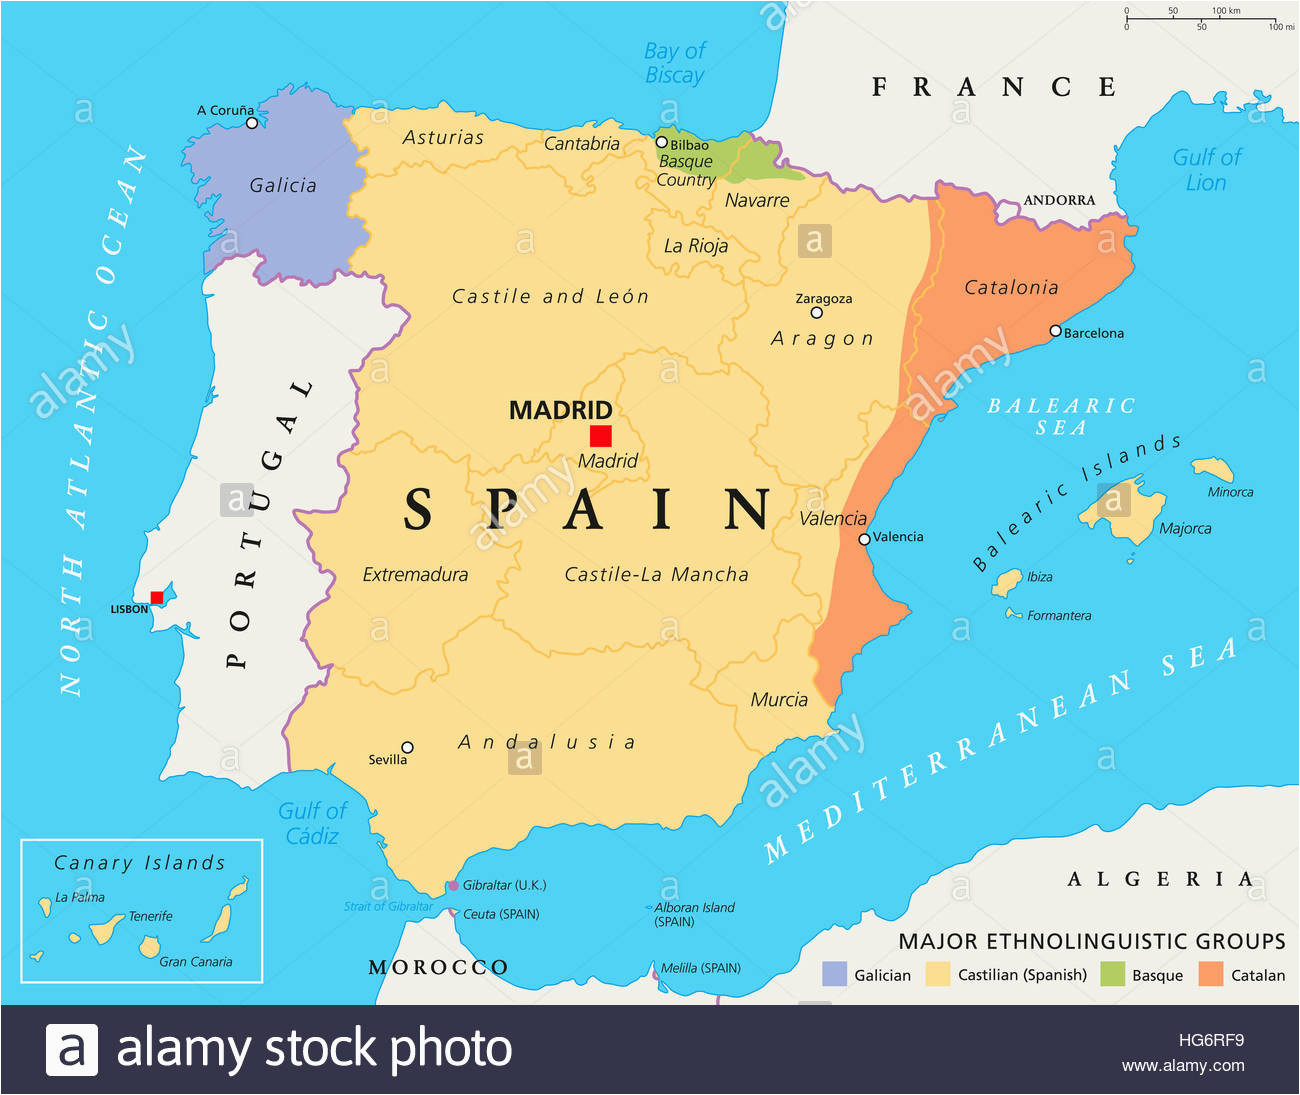 spain map stock photos spain map stock images alamy